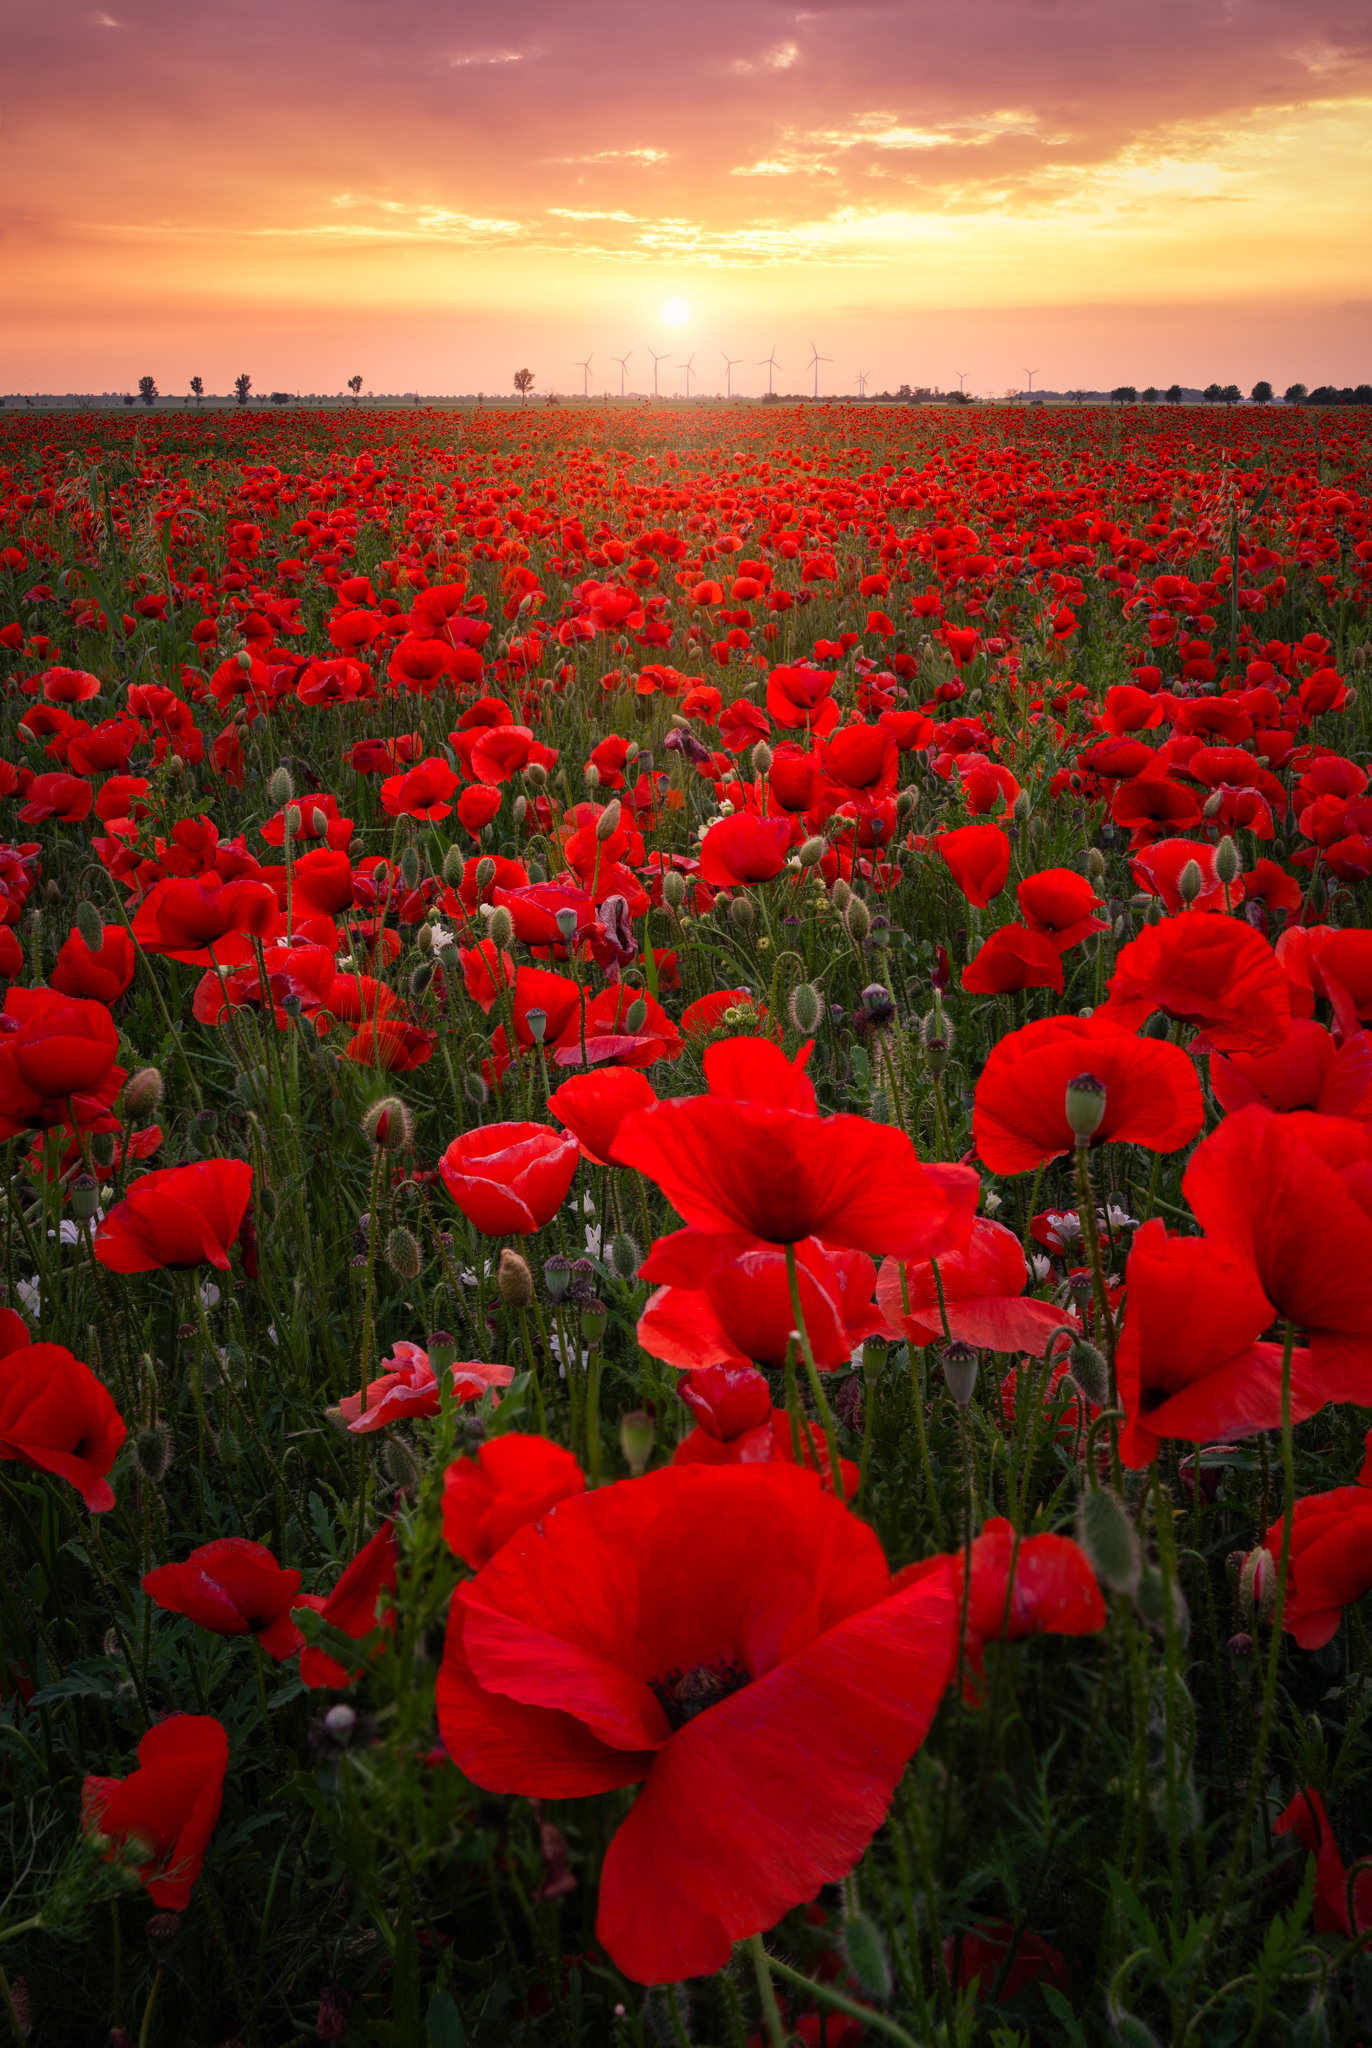 Poppy Field - Saxony, Germany - Landscape Photography